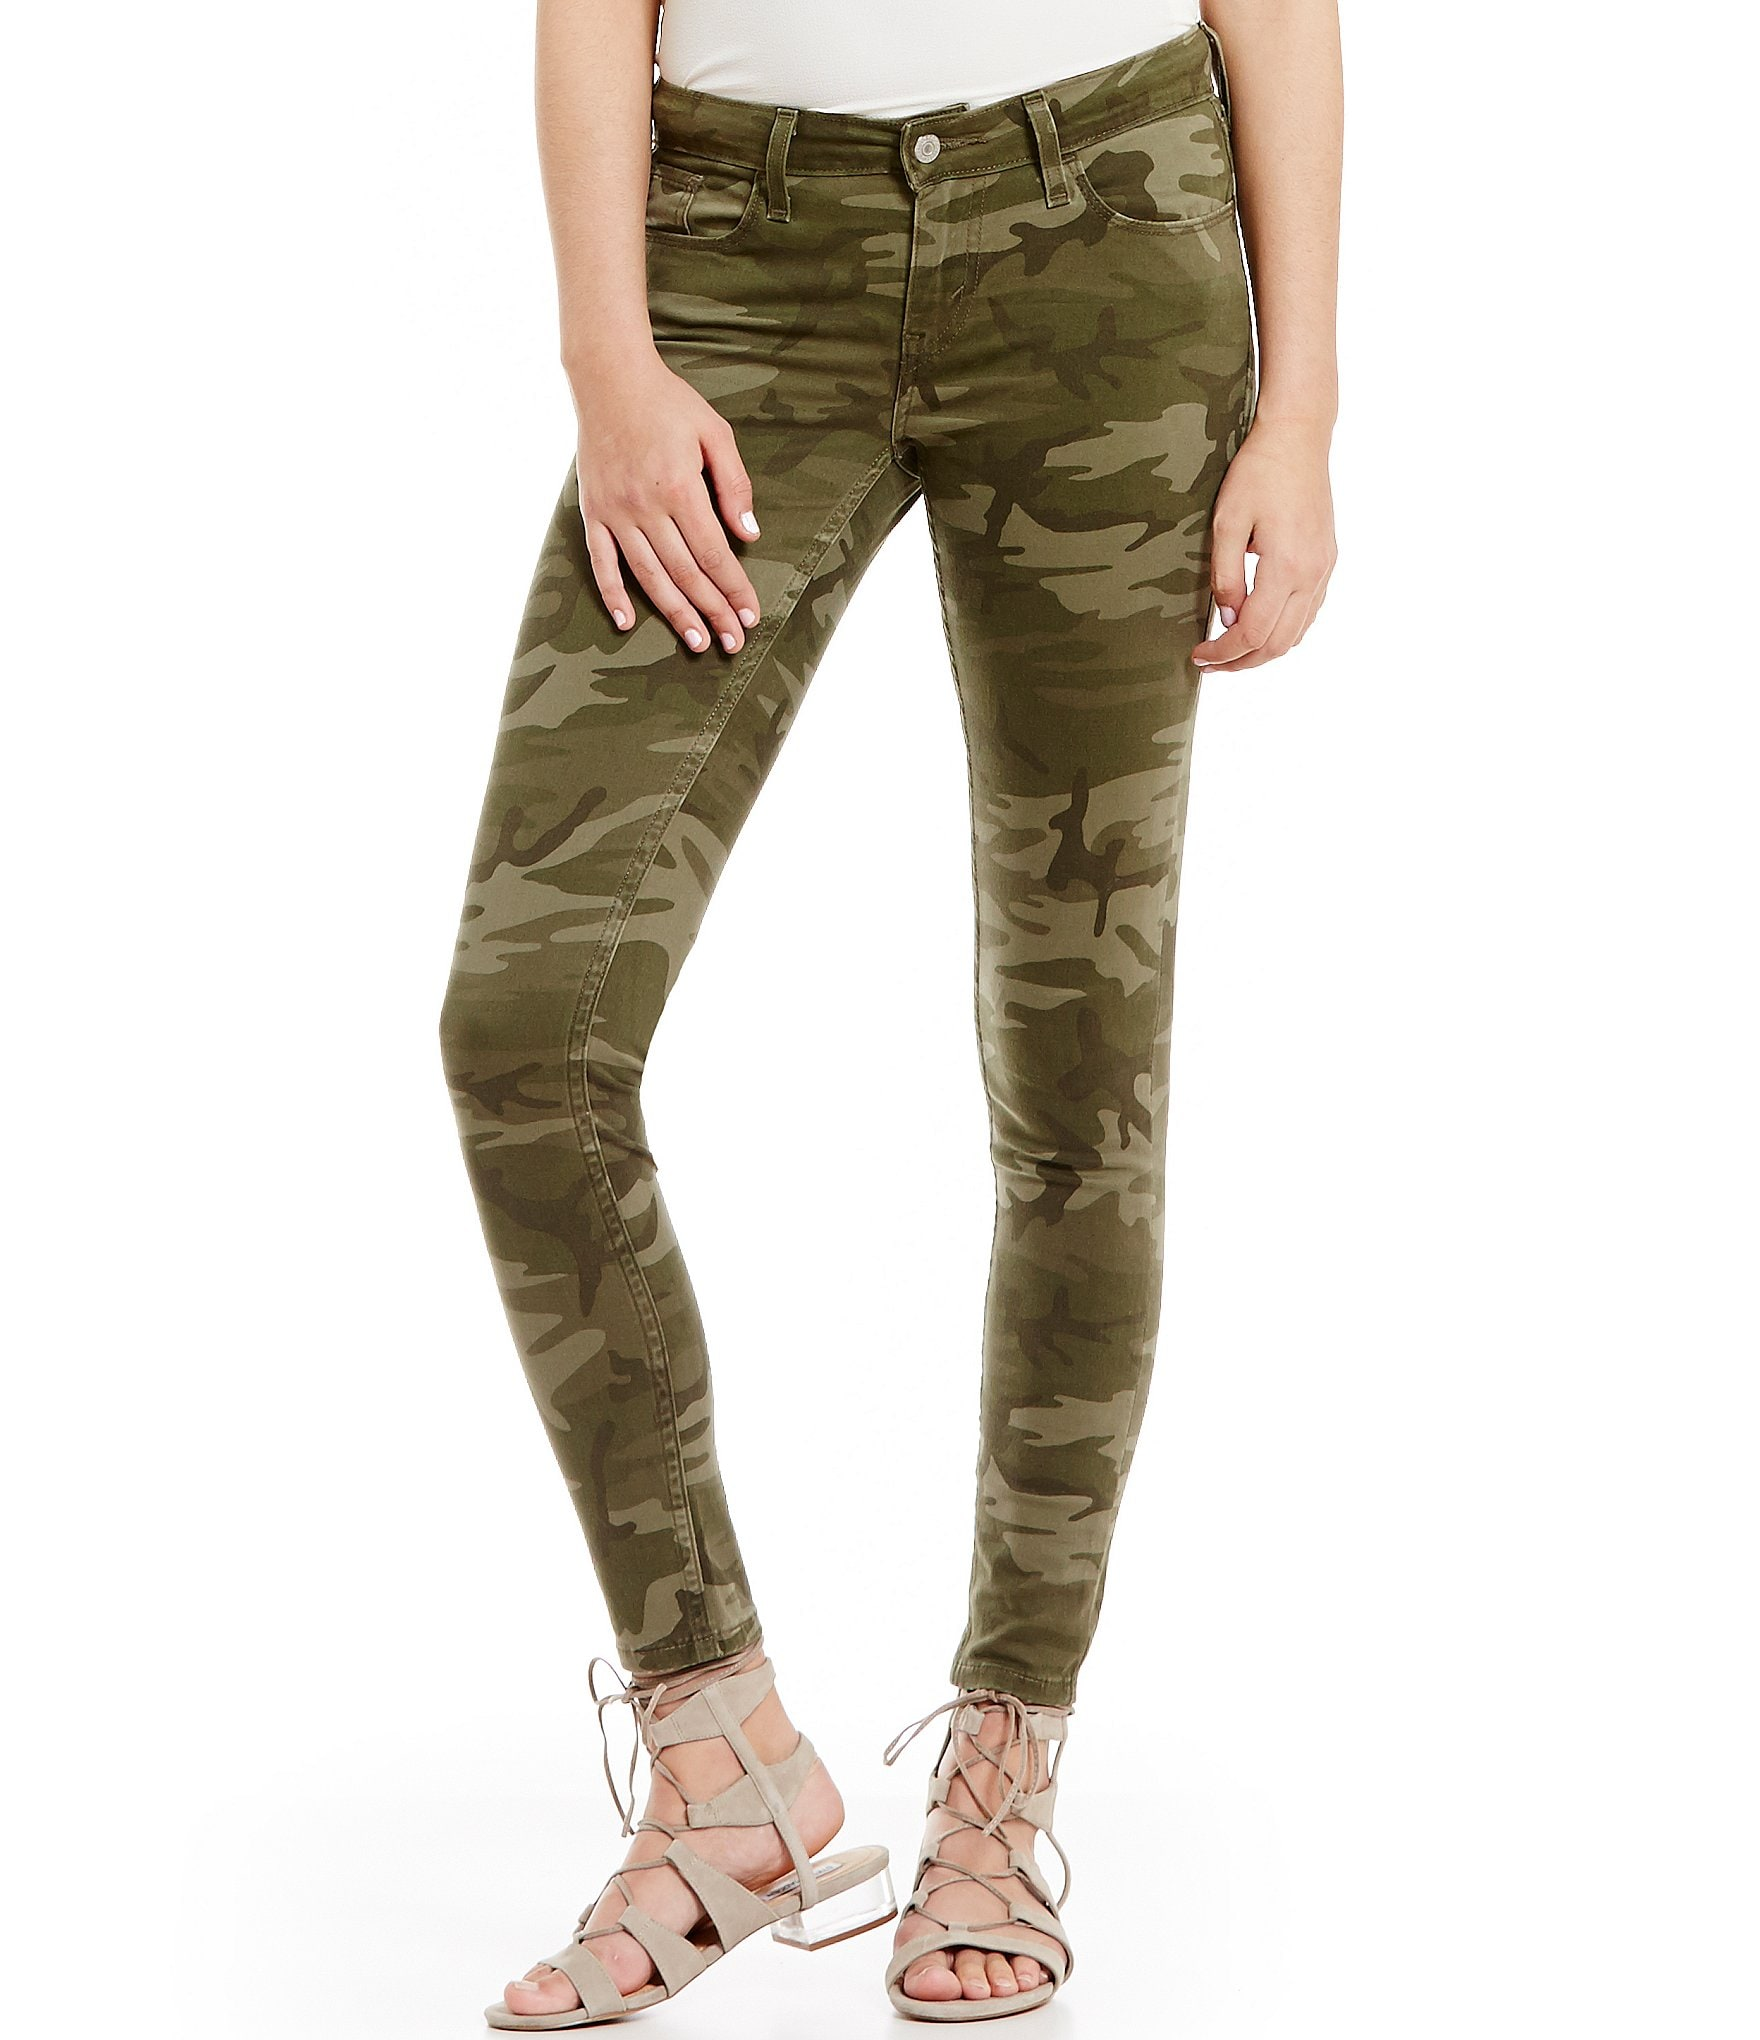 levi 39 s 535 camo super skinny jeans dillards. Black Bedroom Furniture Sets. Home Design Ideas